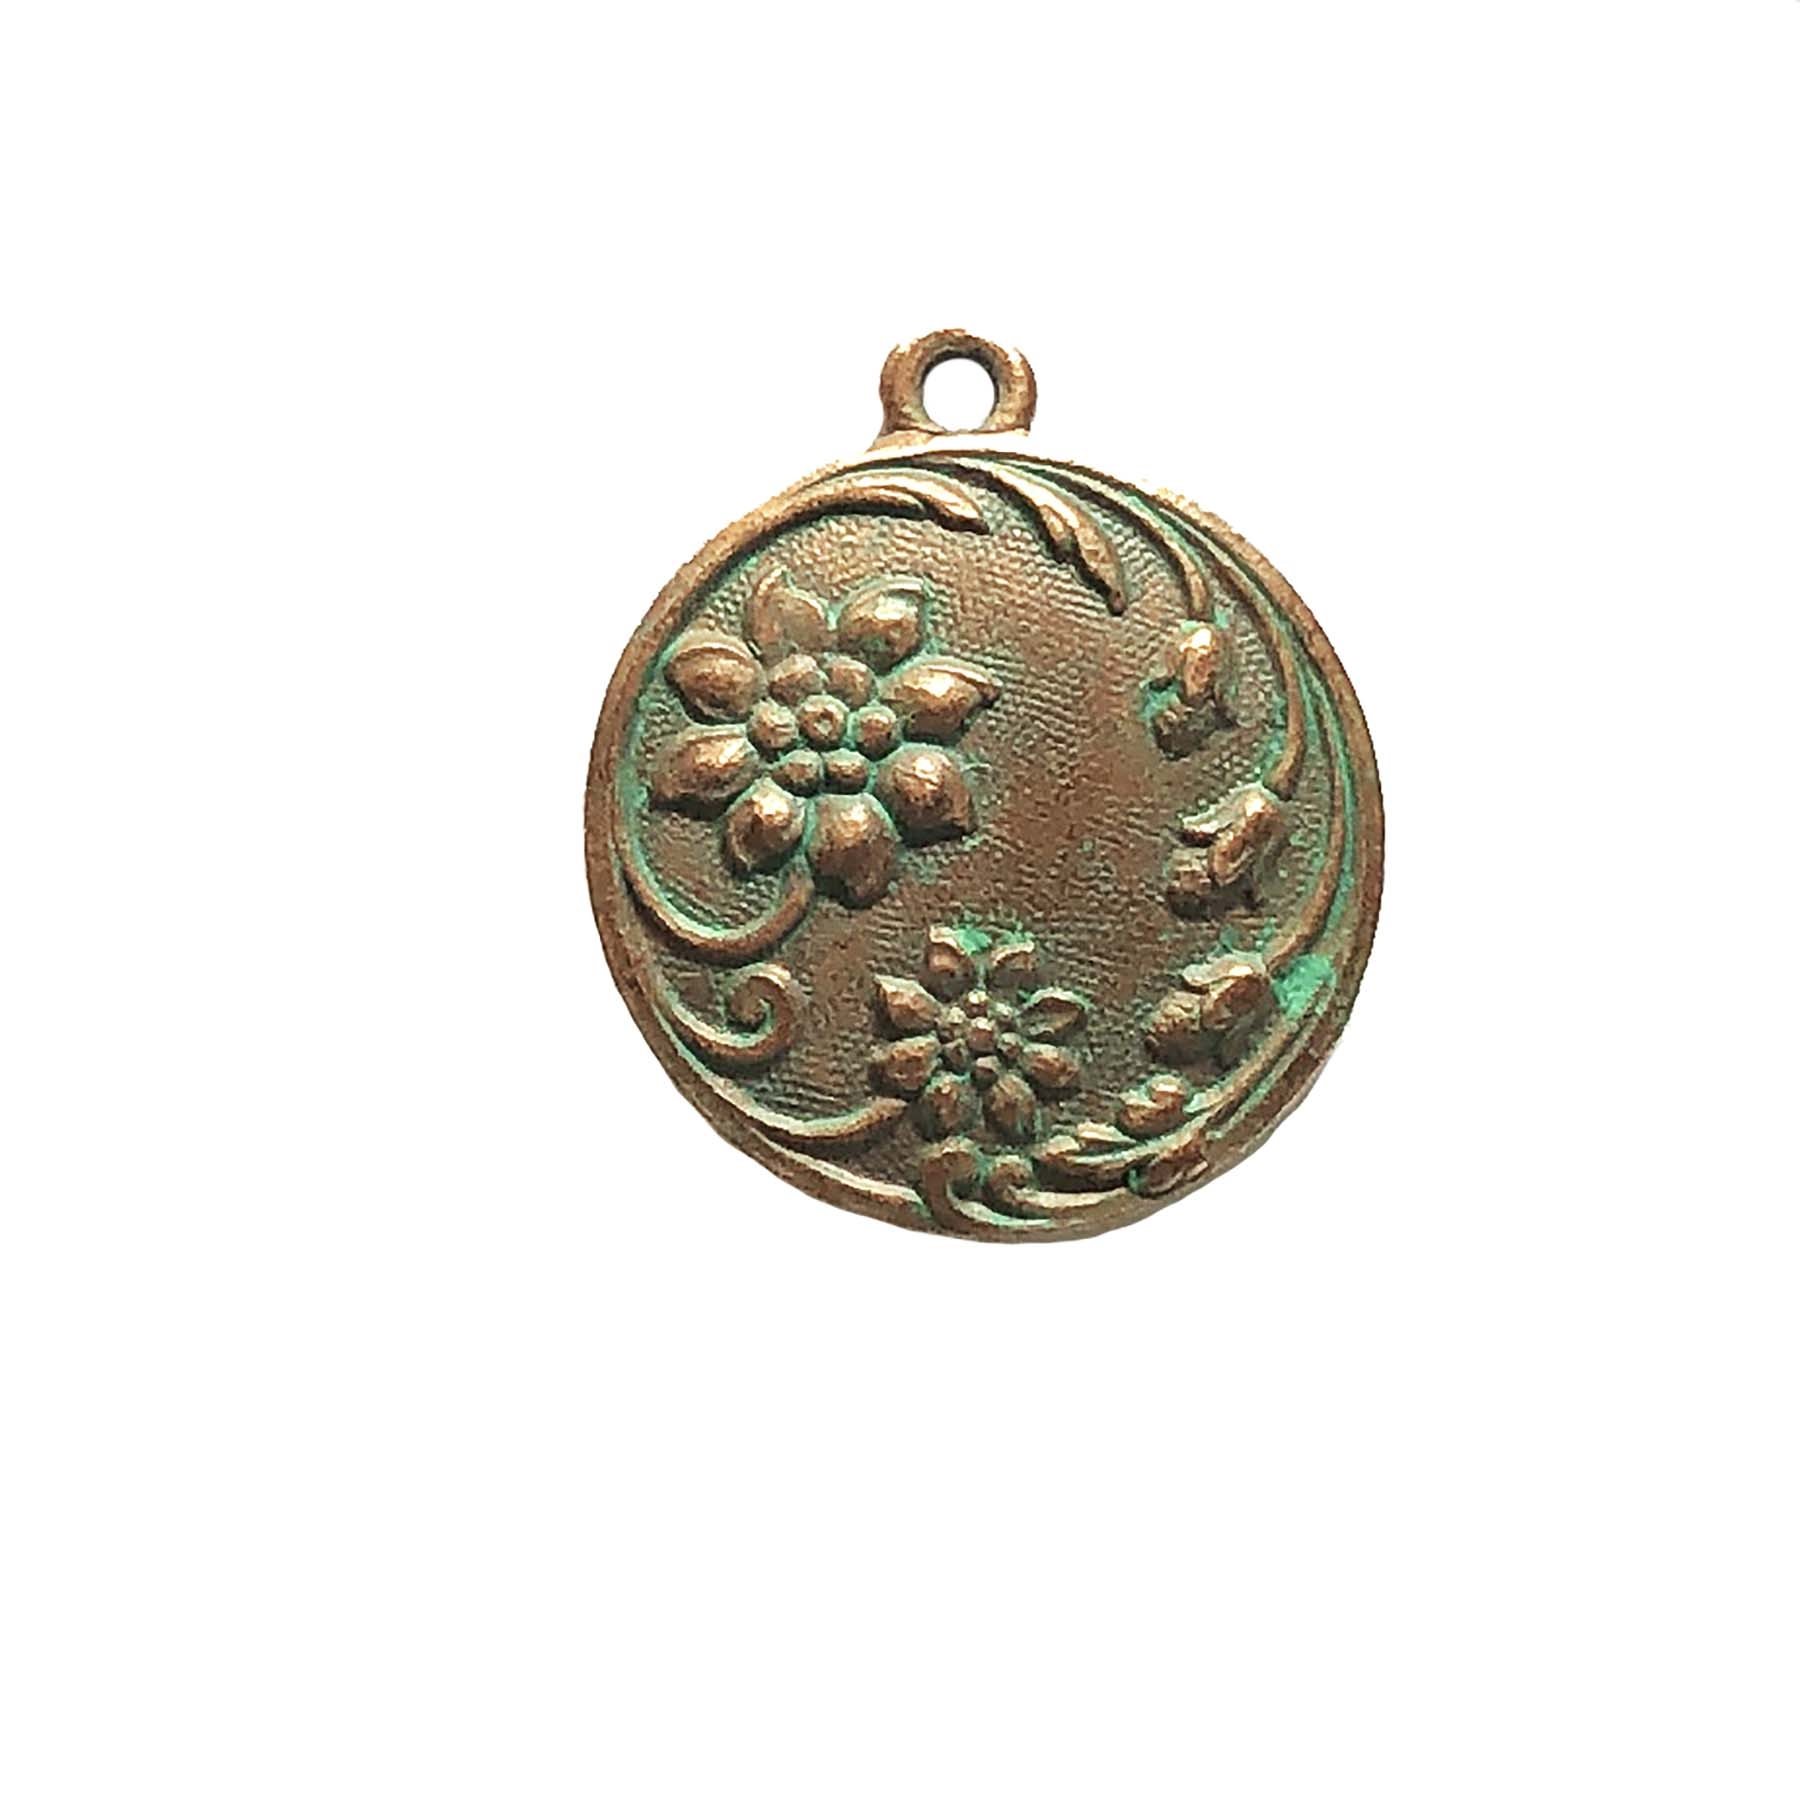 weathered copper pewter, floral pendant, 0653, green patina,  vintage pendant, B'sue by 1928, lead free pewter castings, cast pewter jewelry findings, made in the USA, 1928 Company, B'sue Boutiques